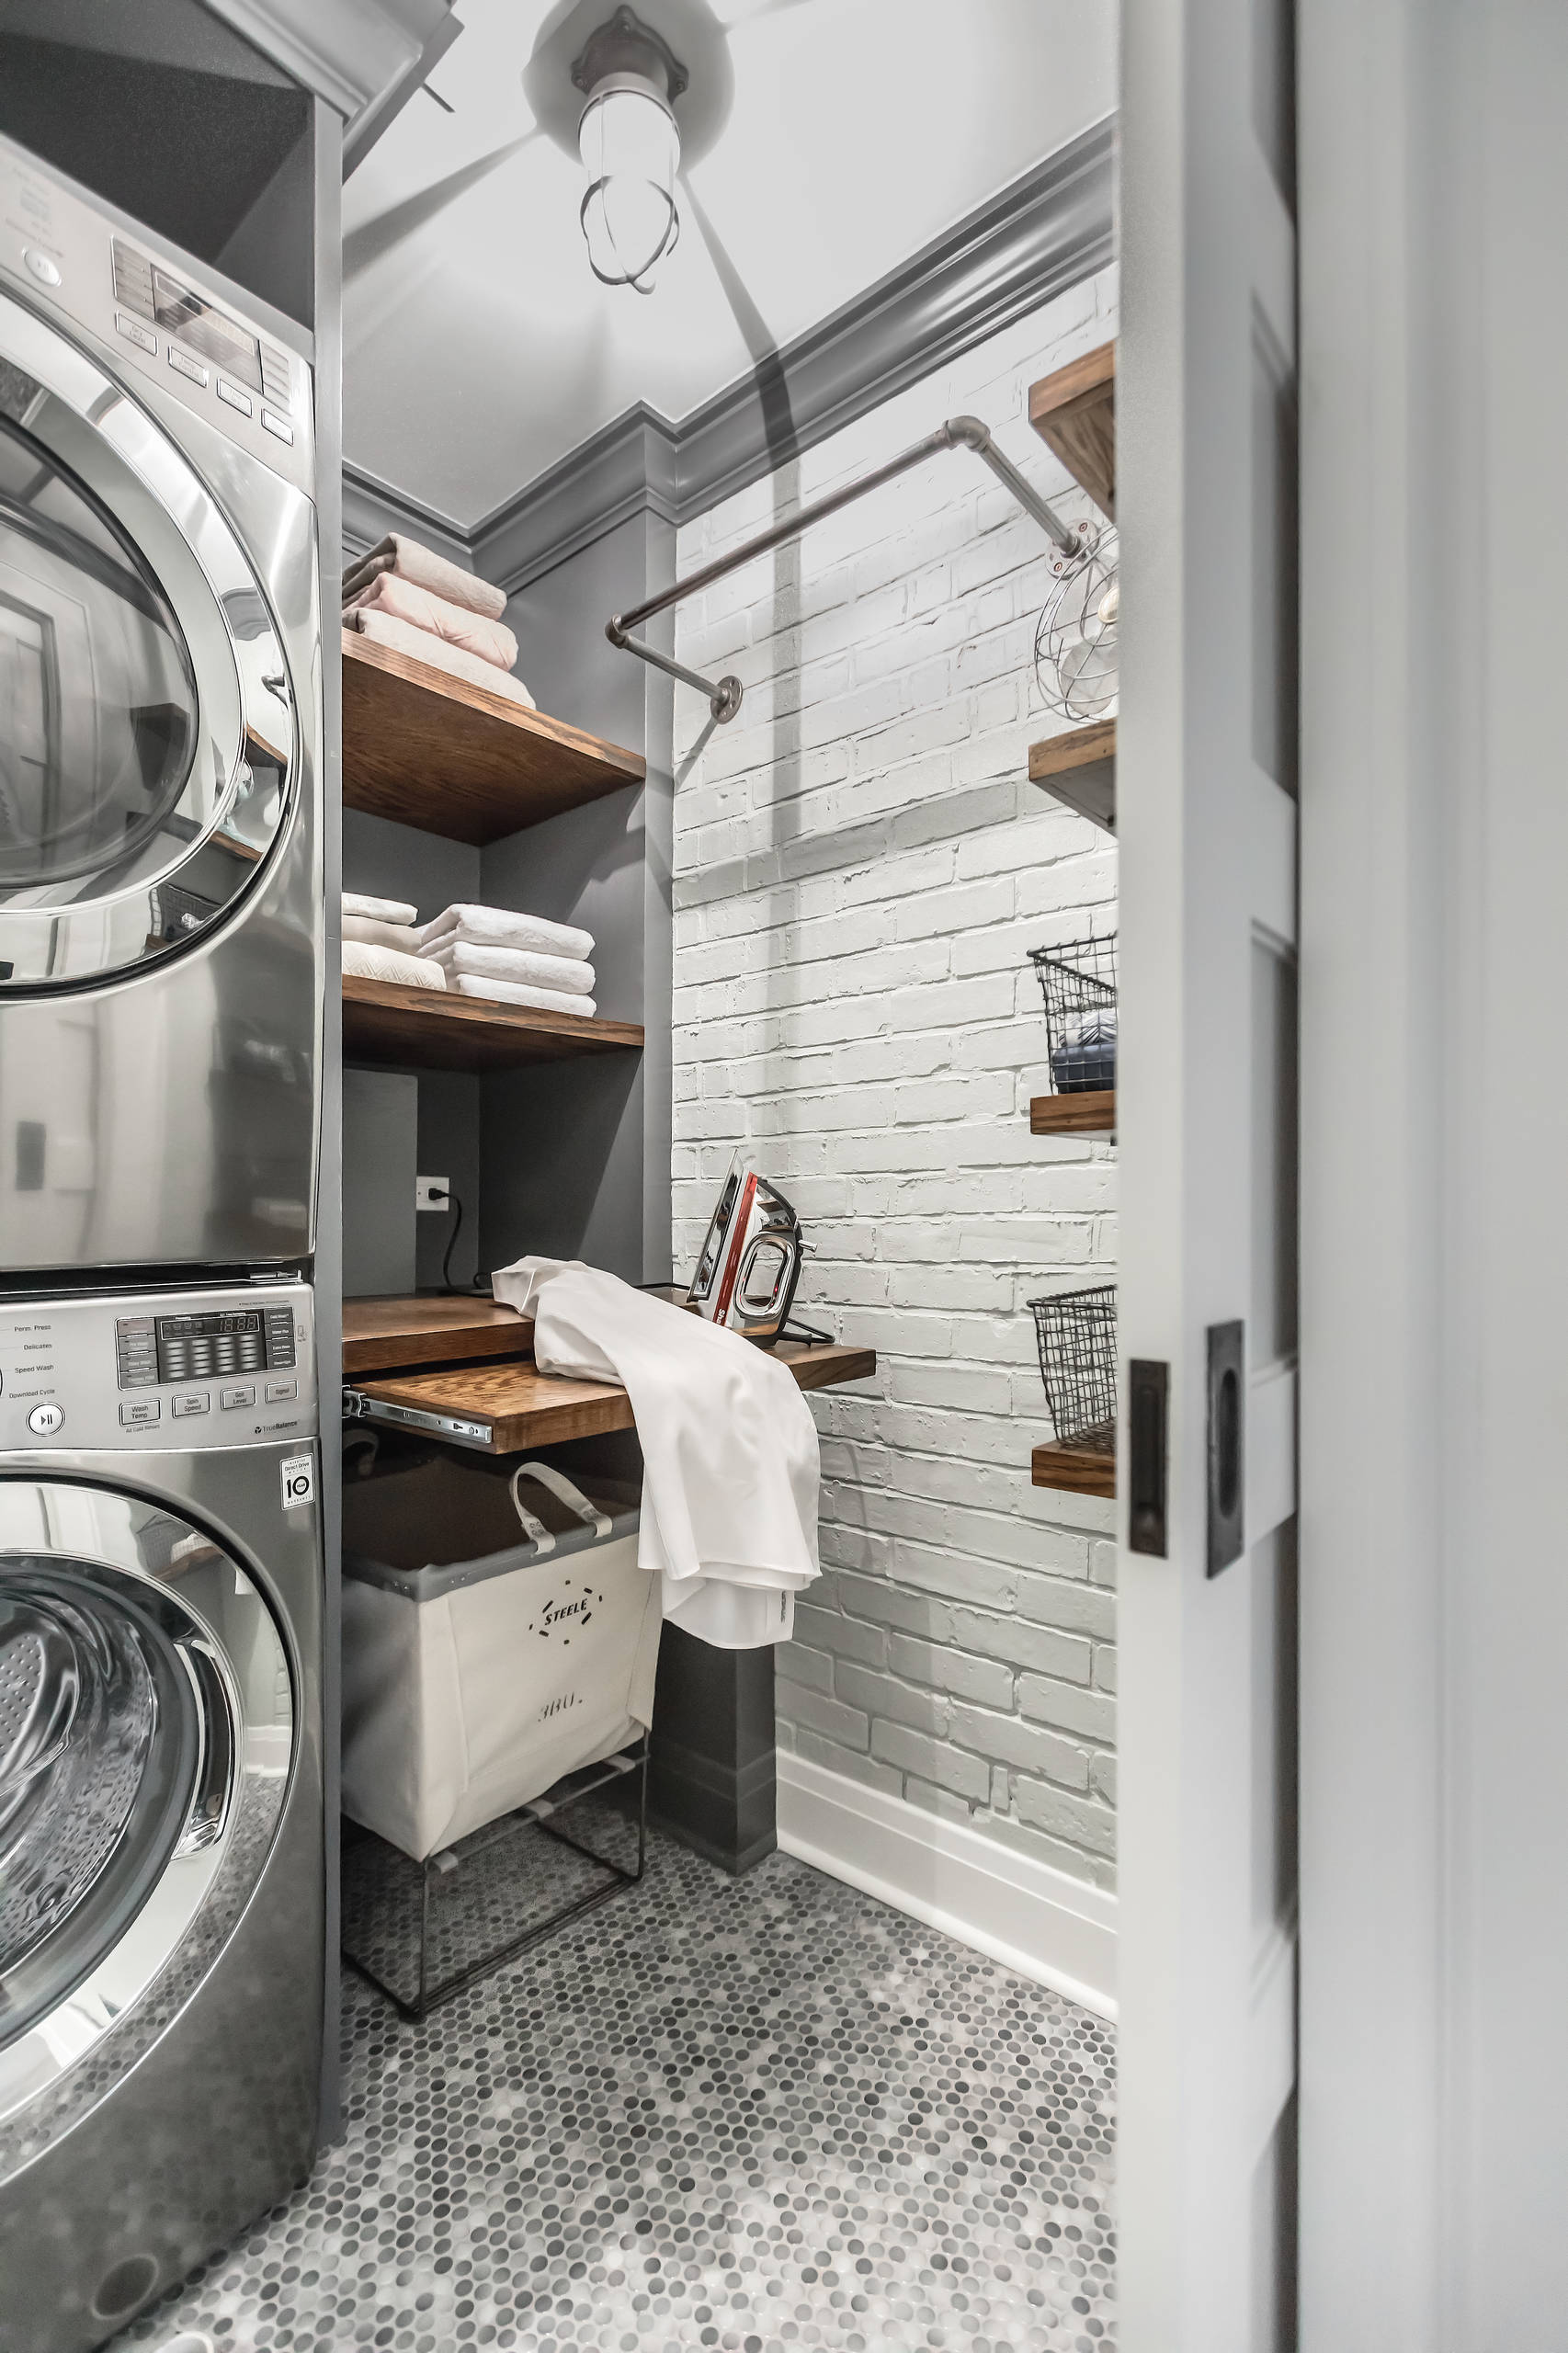 75 Beautiful Laundry Room Pictures Ideas November 2020 Houzz